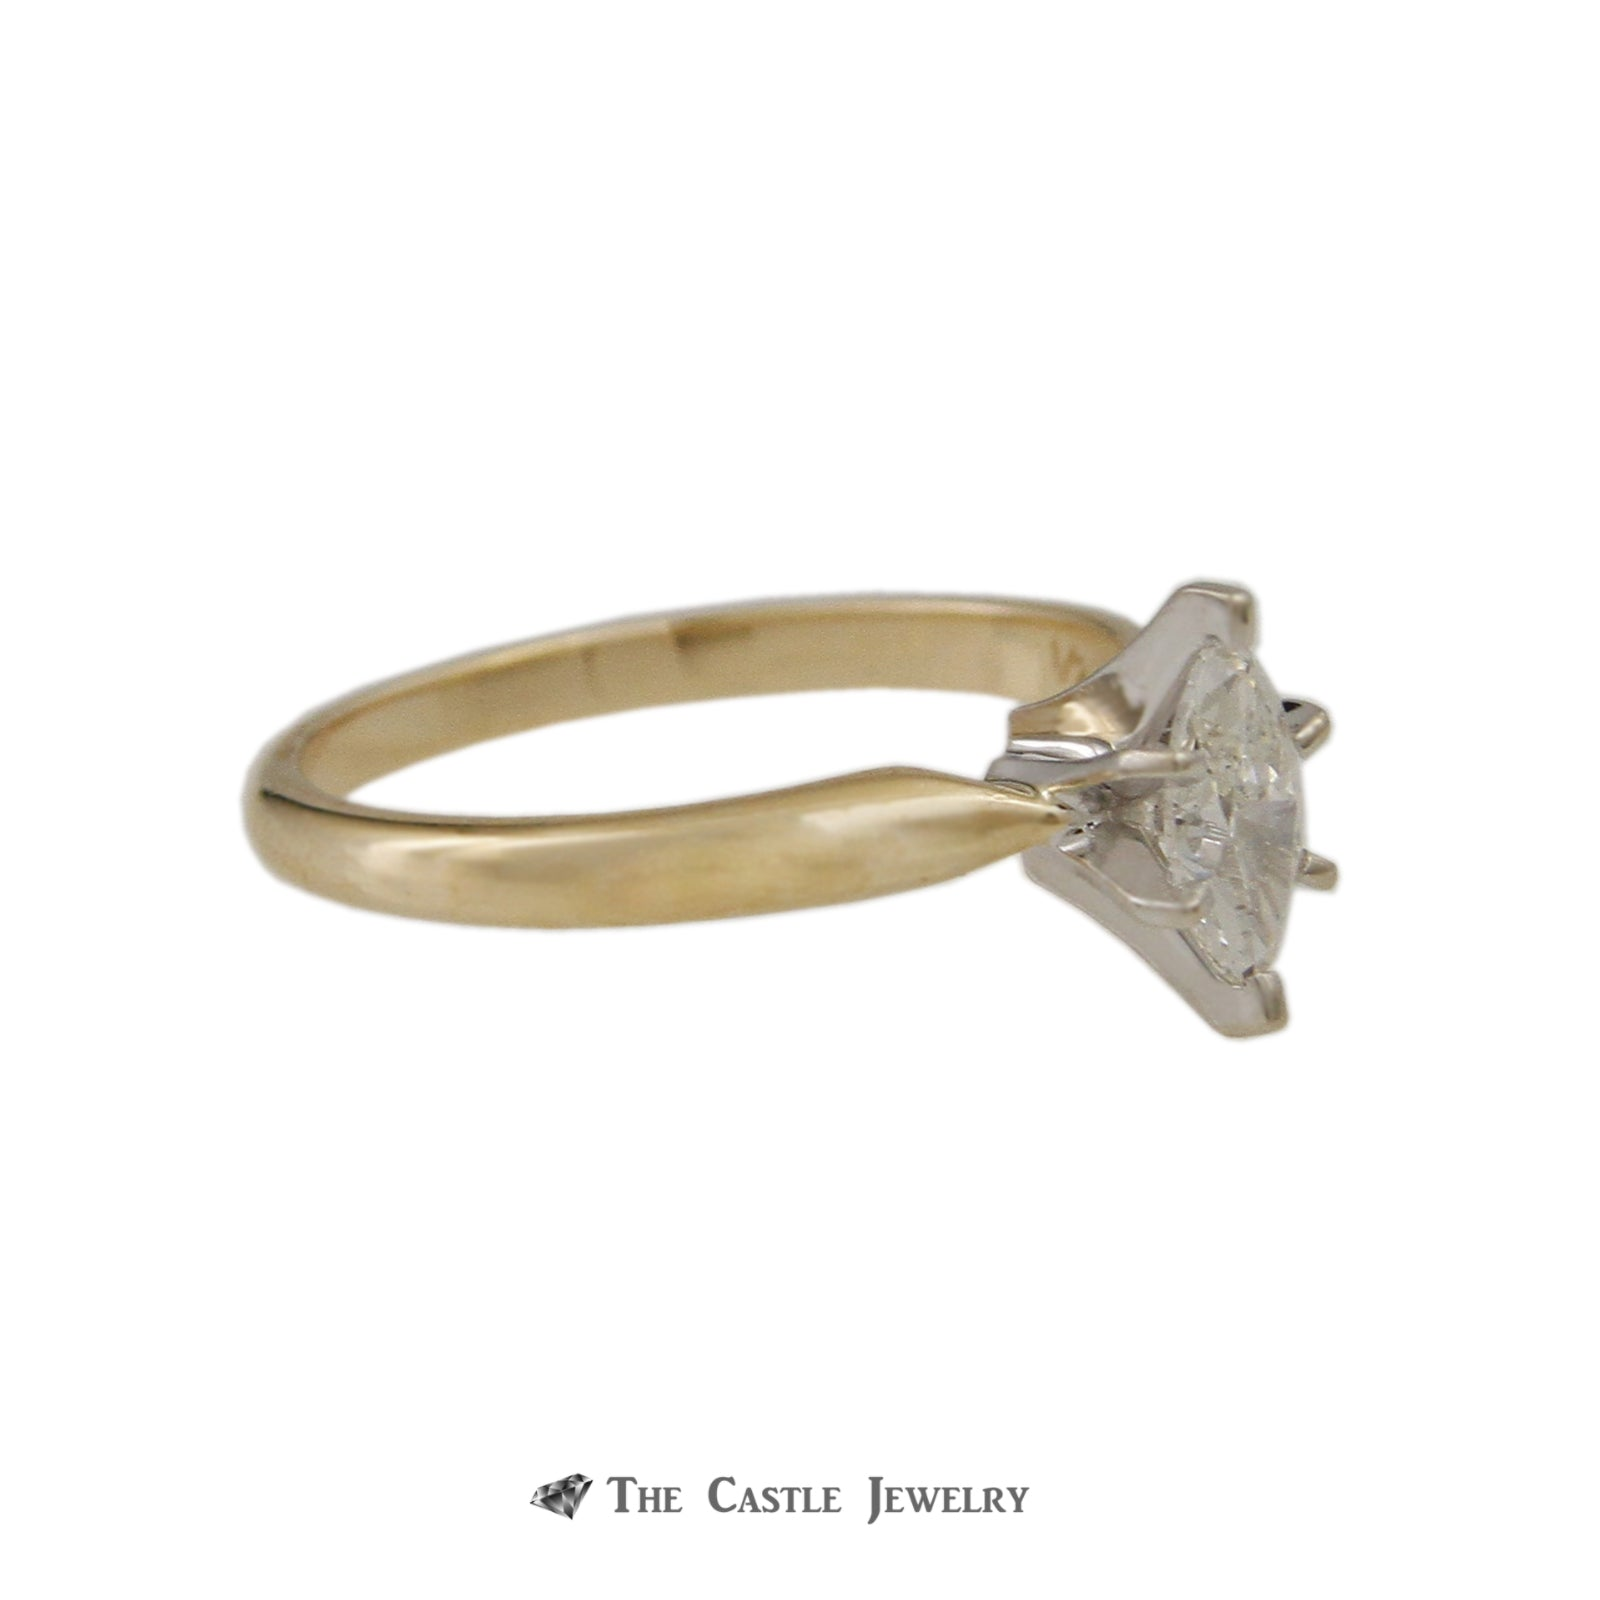 Marquise .50ct Diamond Solitaire Engagement Ring in 6 Prong Mounting in 14K Yellow Gold